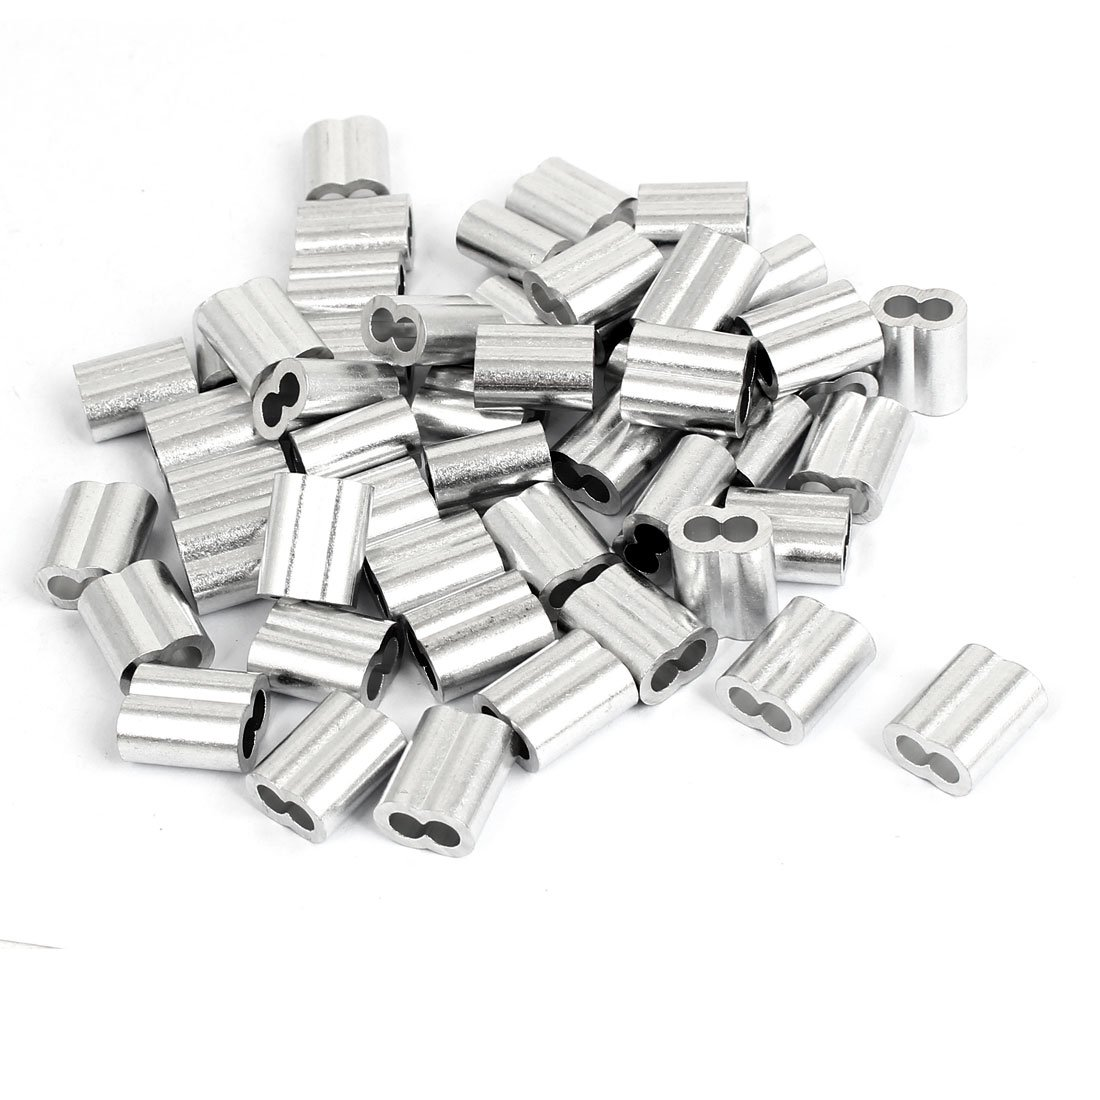 uxcell 5/32'' Aluminum Sleeves Silver Tone 50 Pcs for Wire Rope